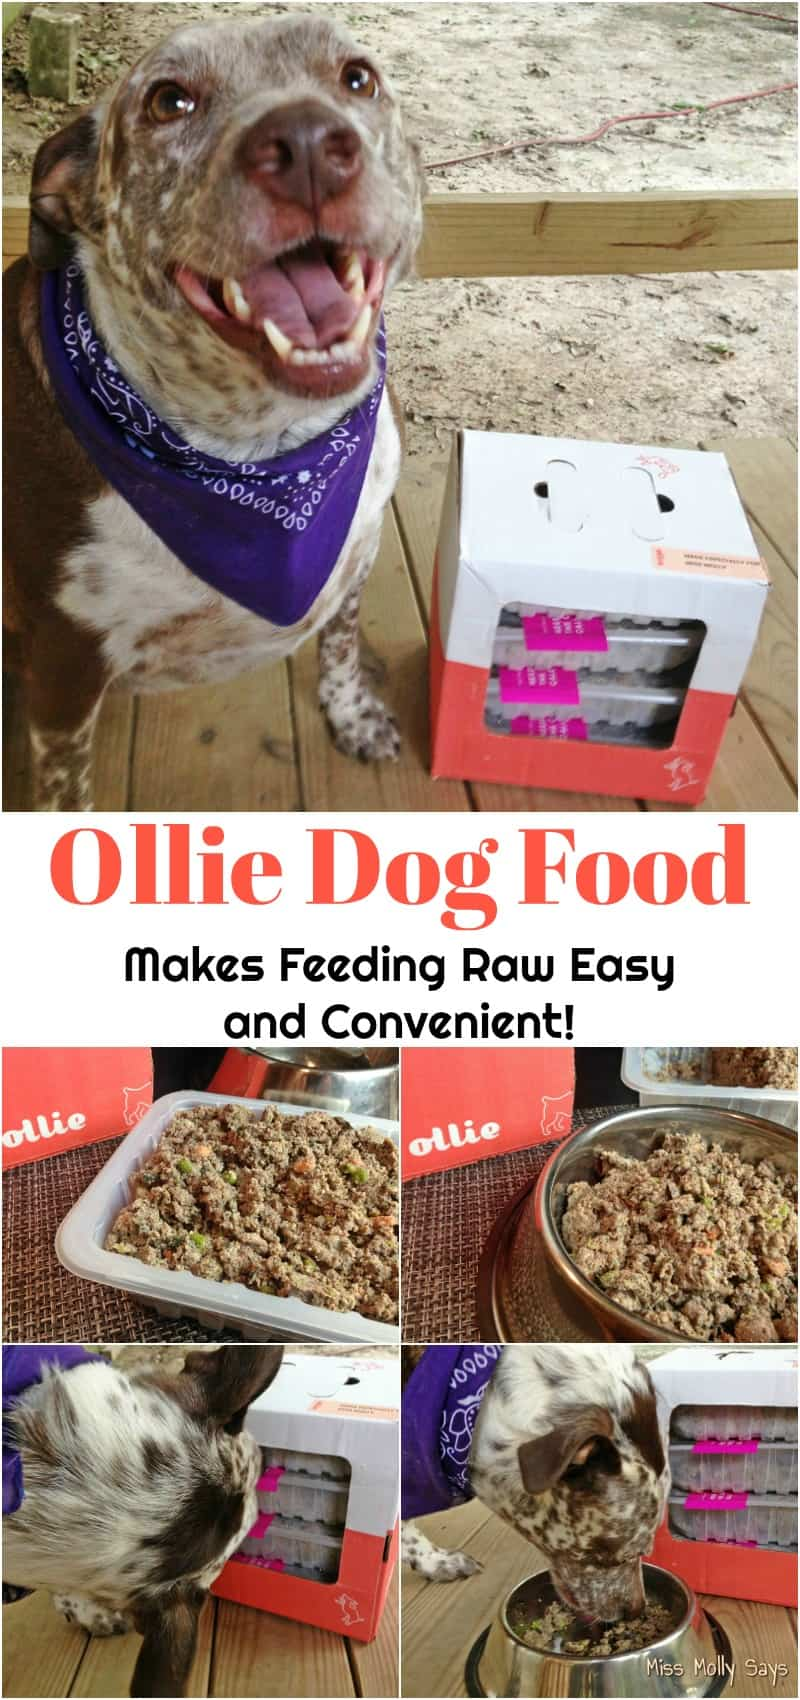 Ollie Dog Food Makes Feeding Raw Easy and Convenient!